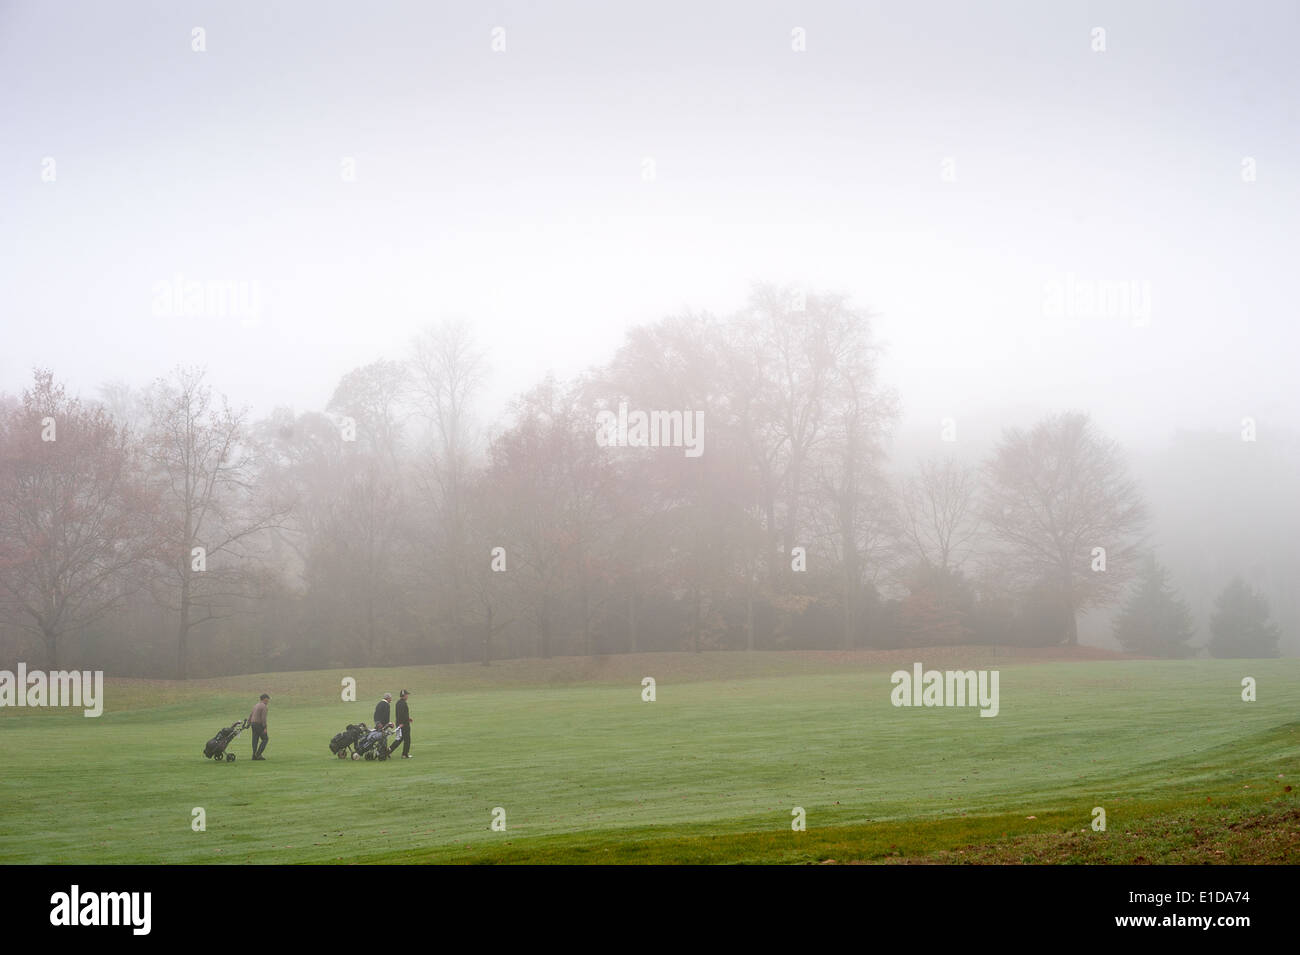 A group of golfers playing a round in an autumn mist - Stock Image